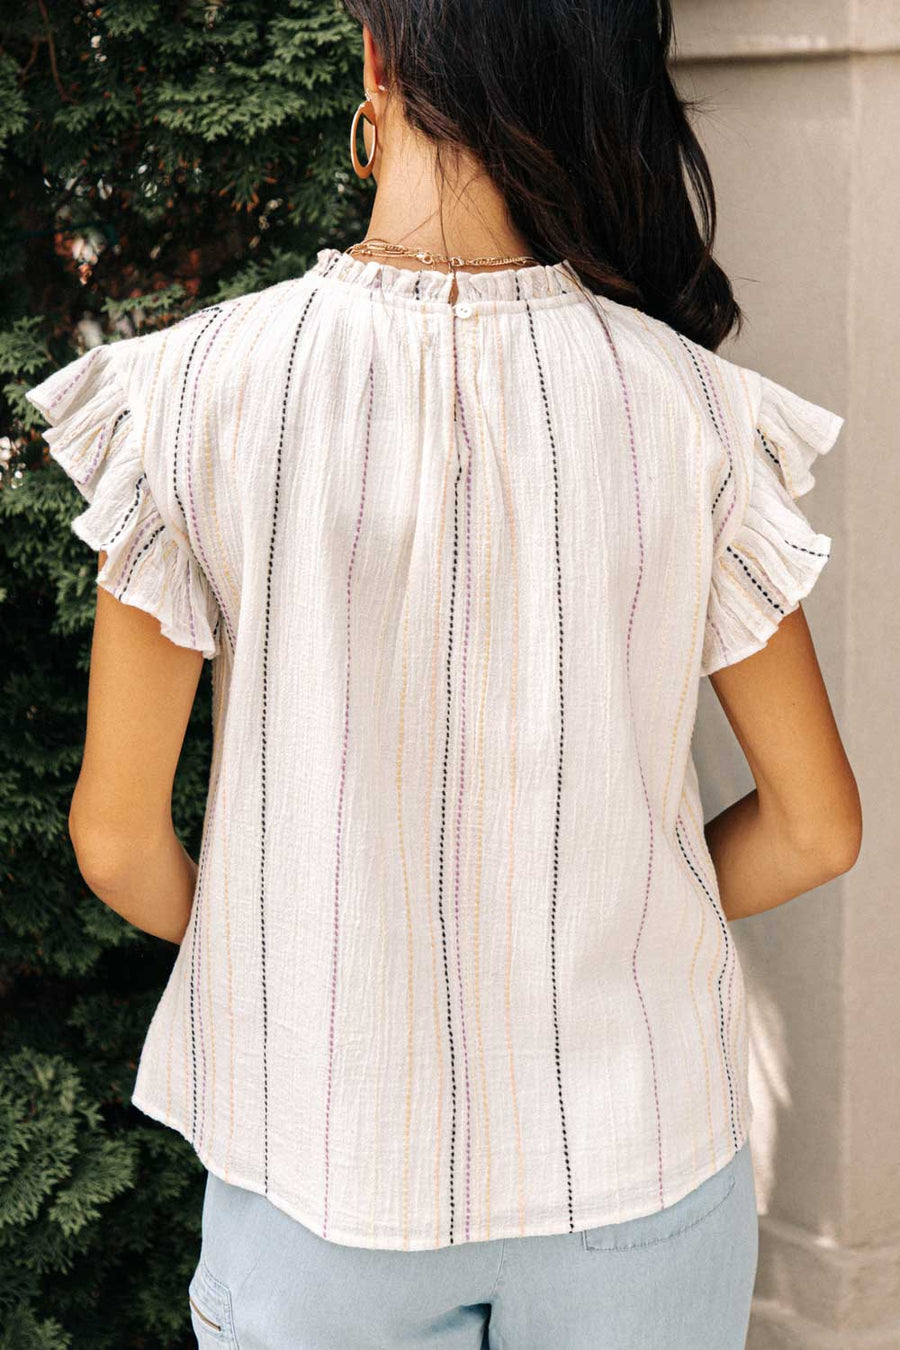 Giselle Detail Stitch Top